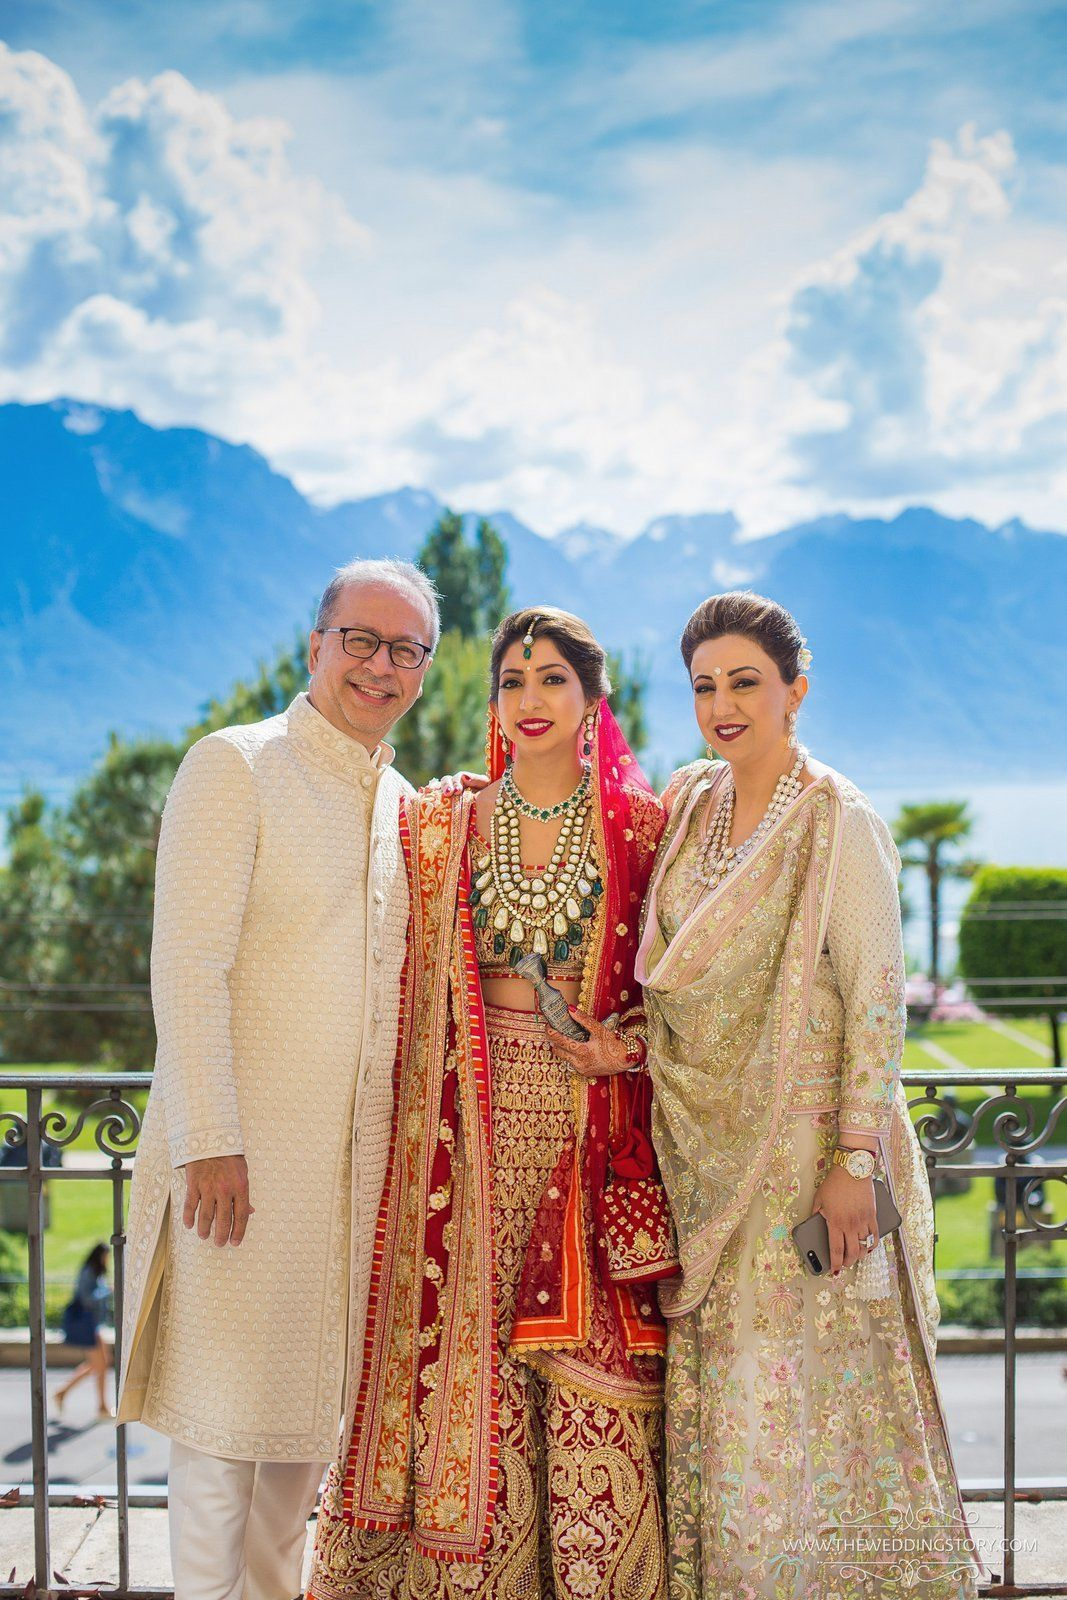 Wedding picture ideas with parents